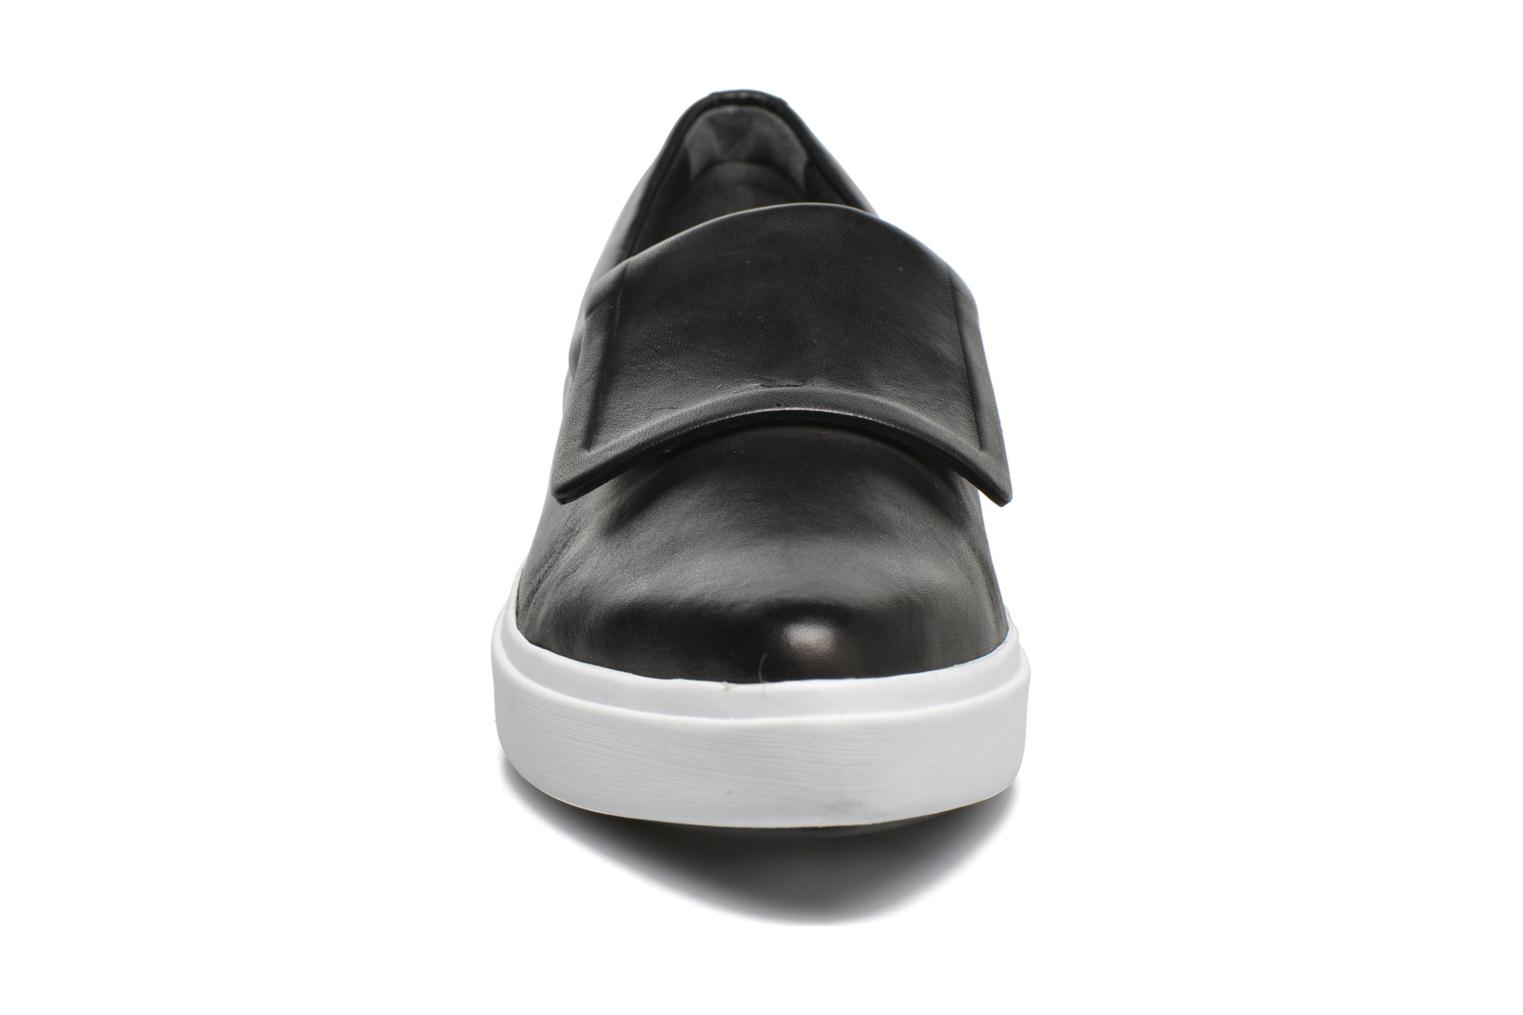 Tanner -Eva mold slip on Black